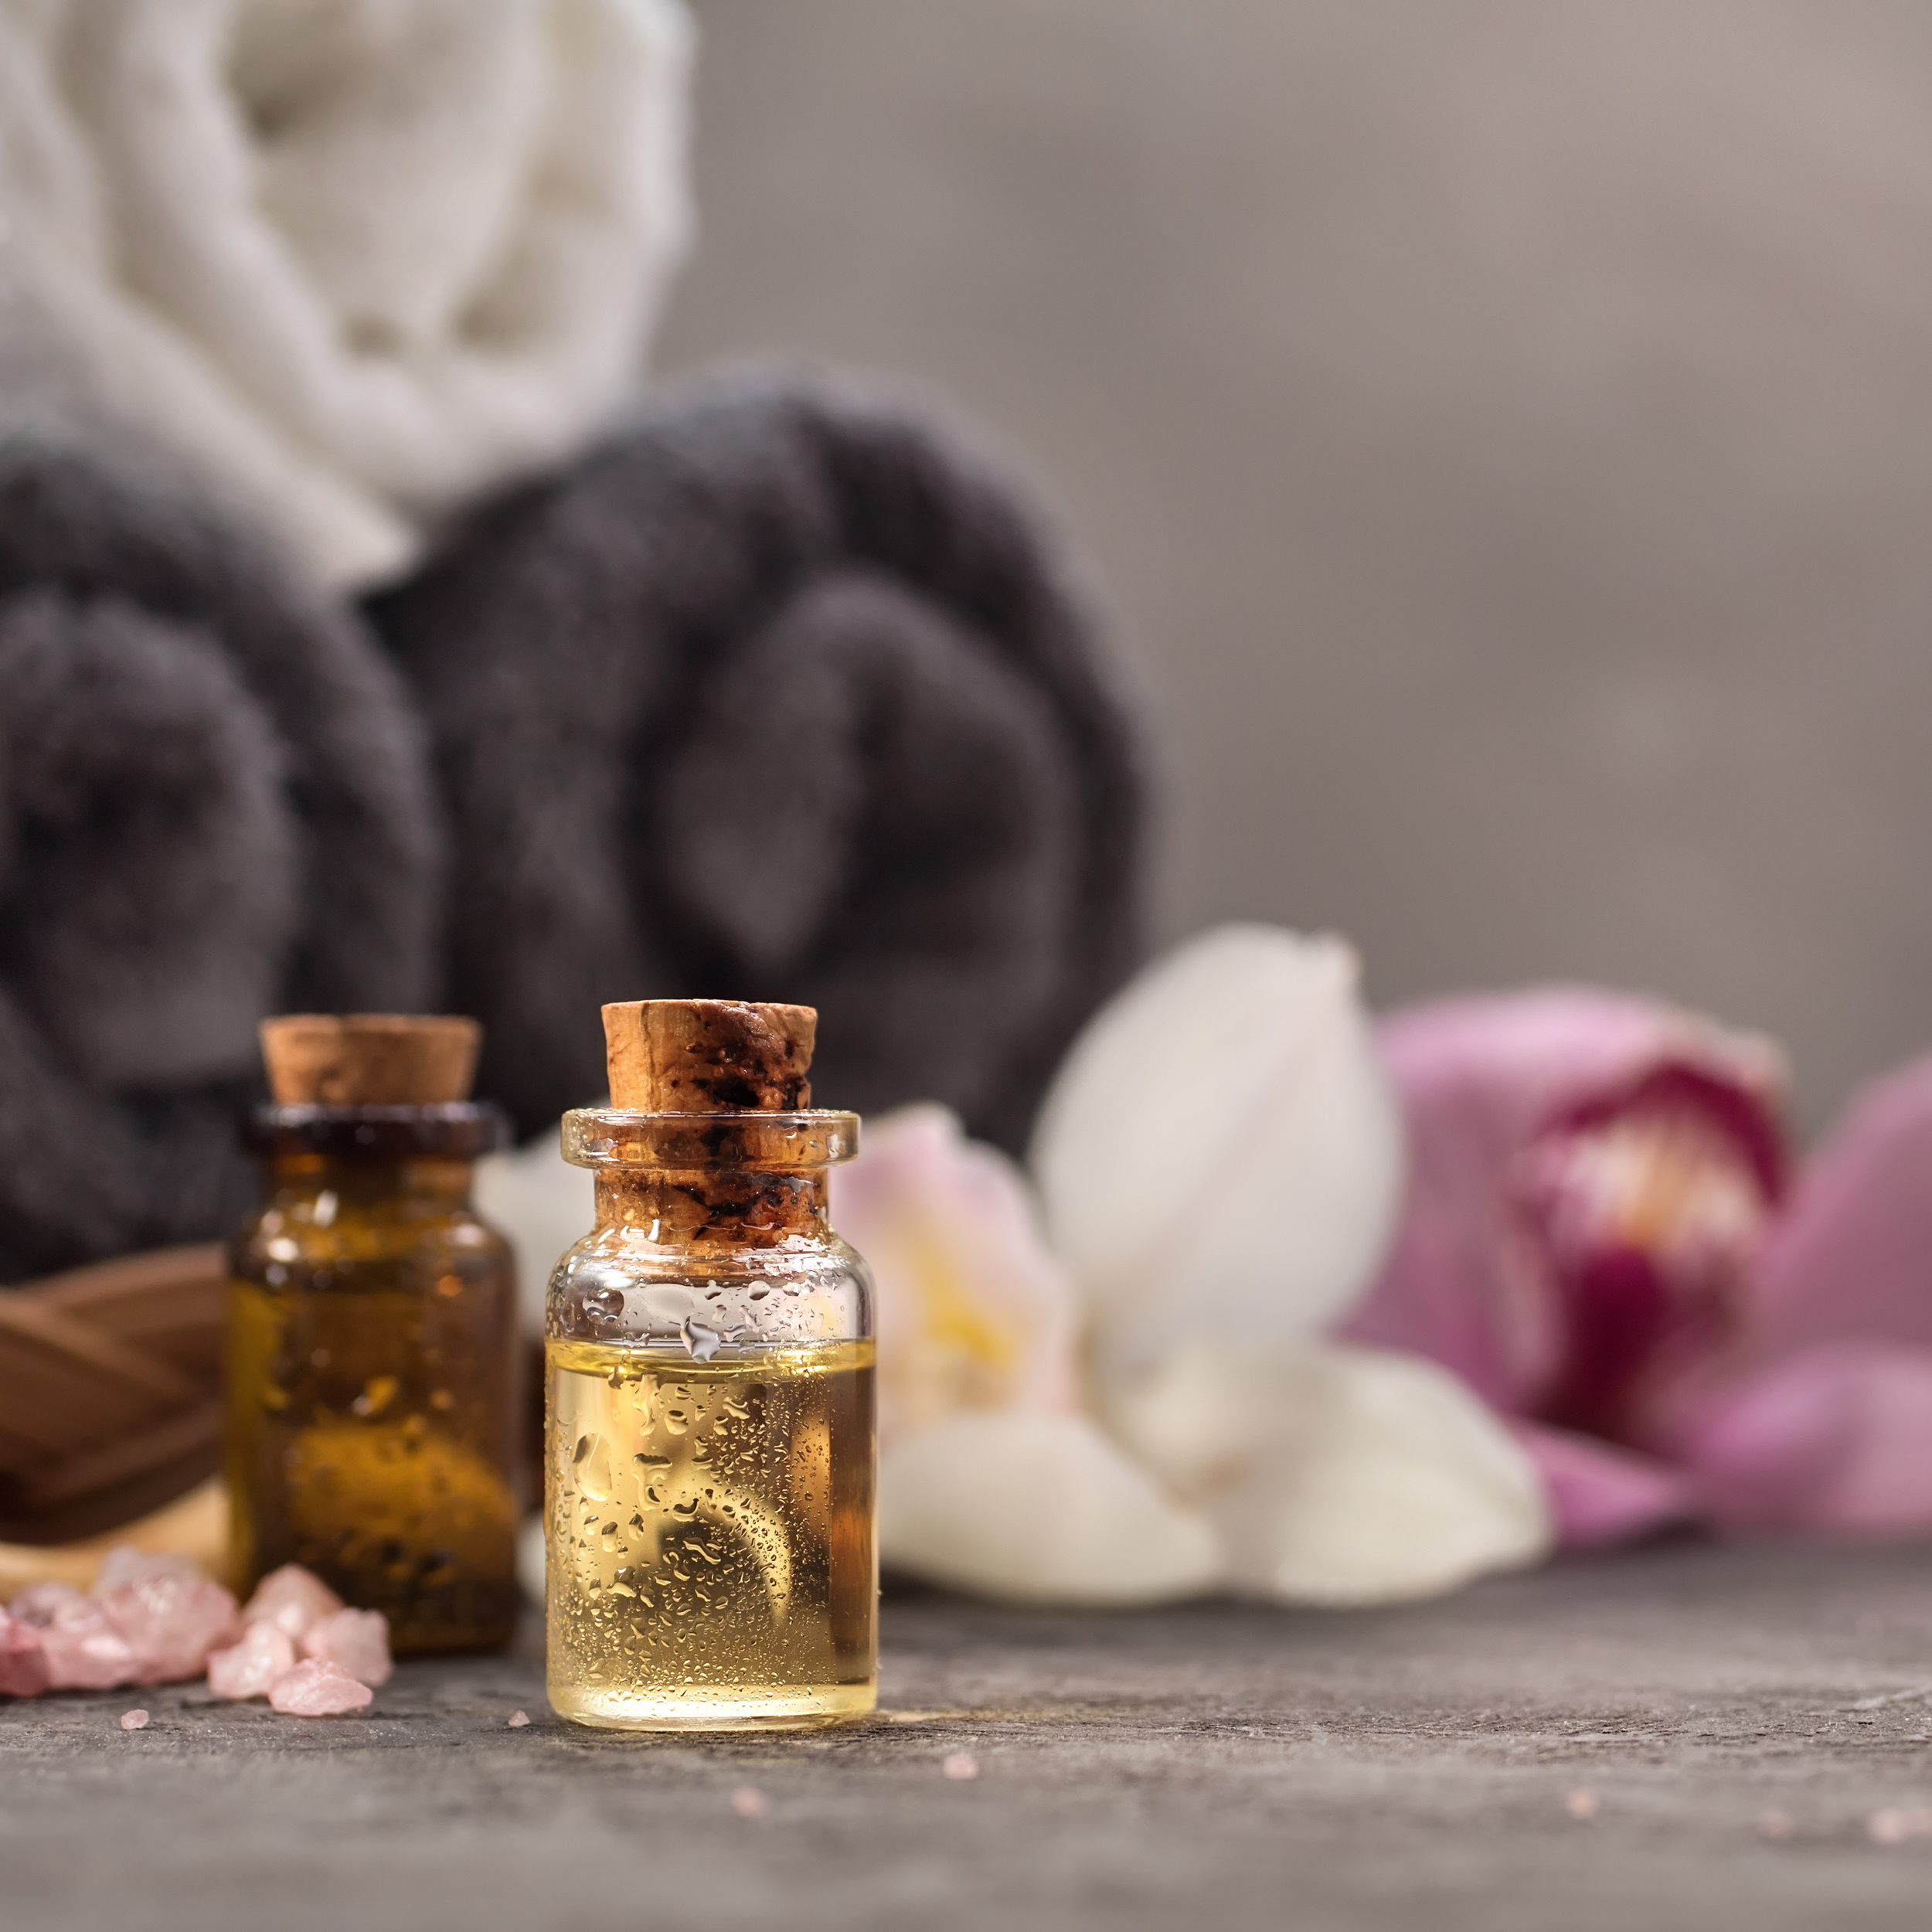 A delightfully aromatic experience using 100% pure essential oils. Based on Lymphatic Drainage techniques, this massage is suitable for post surgery and chemotherapy. It is a deeply relaxing experience.  90 mins - $150